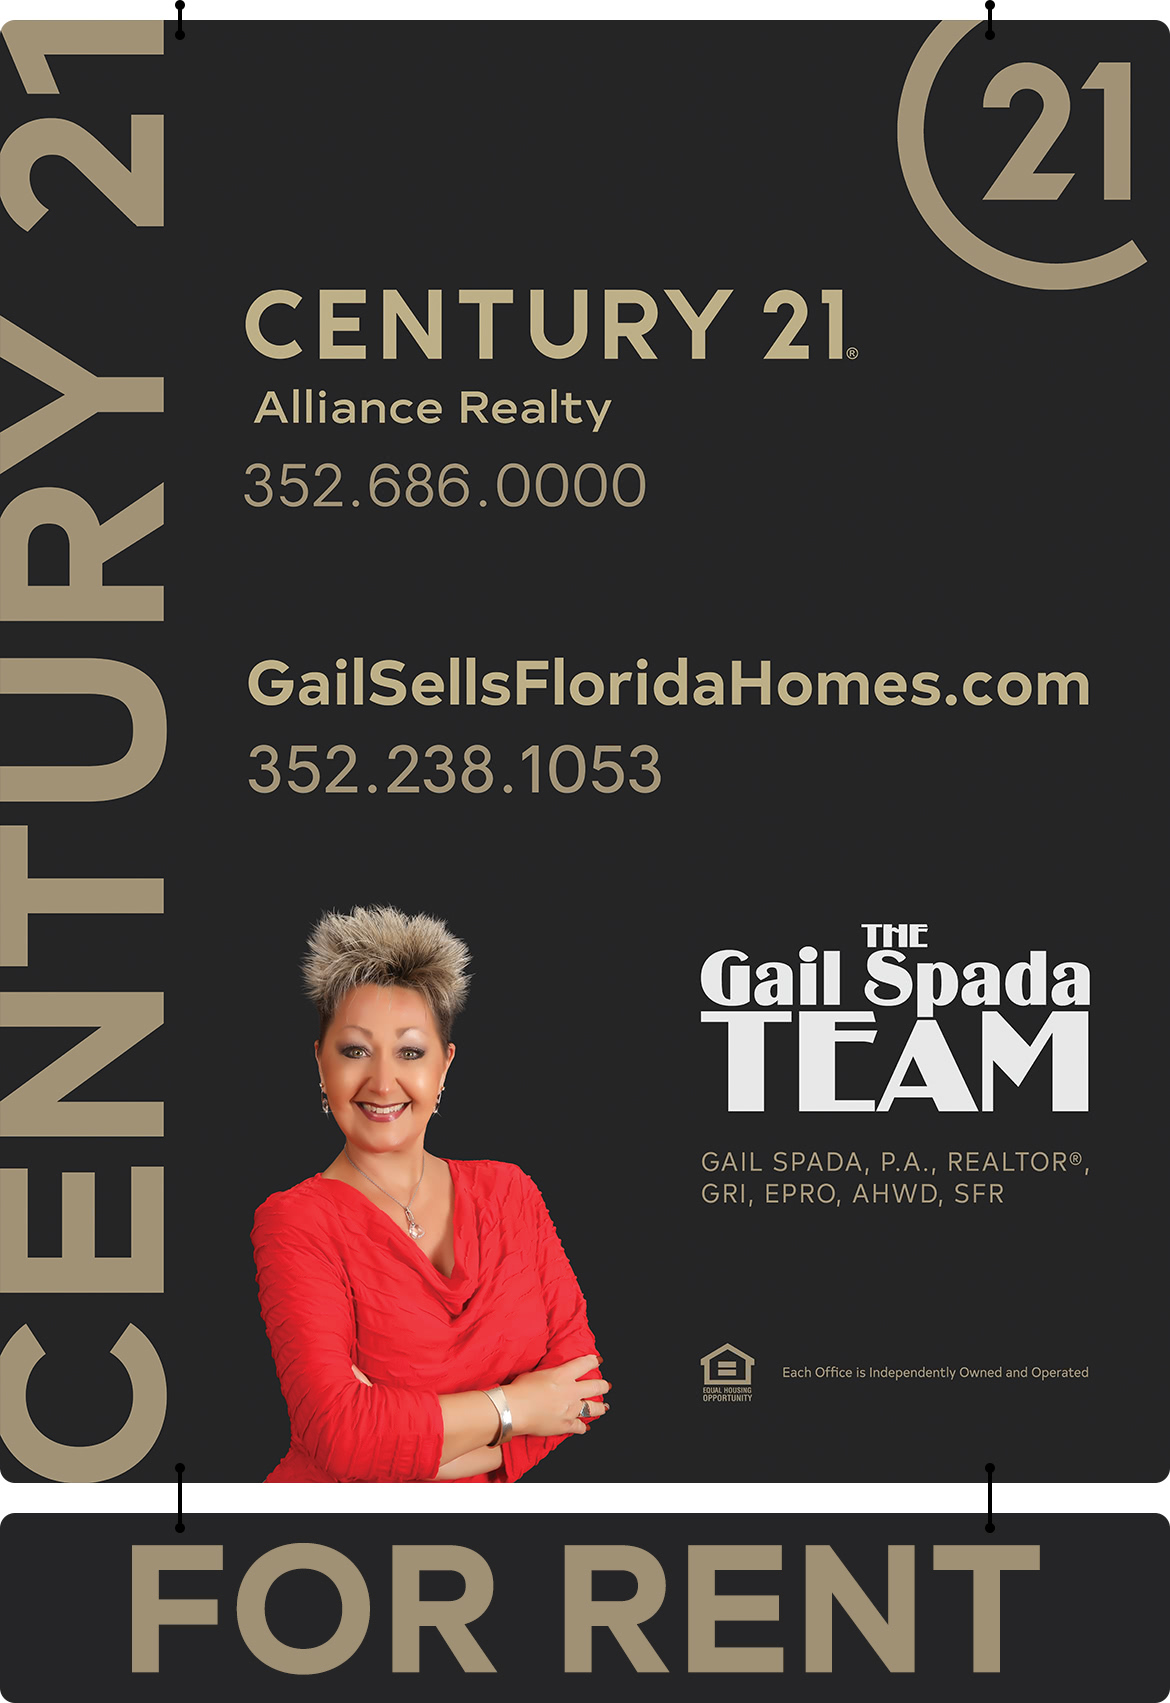 Rent your with THE Gail Spada TEAM